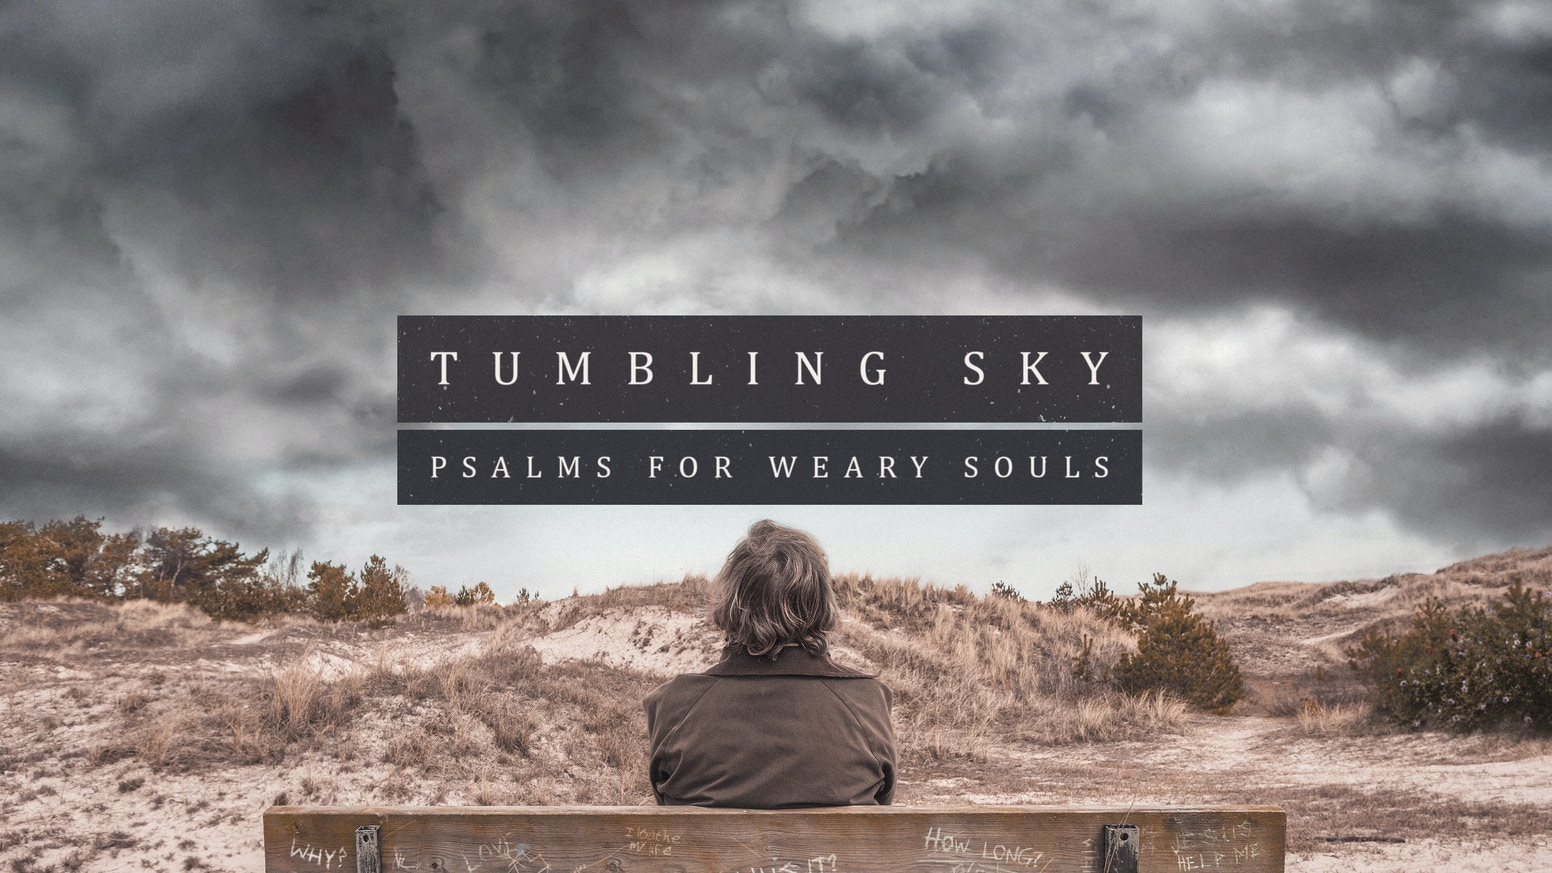 Tumbling Sky - Psalms for Weary Souls by Matt Searles